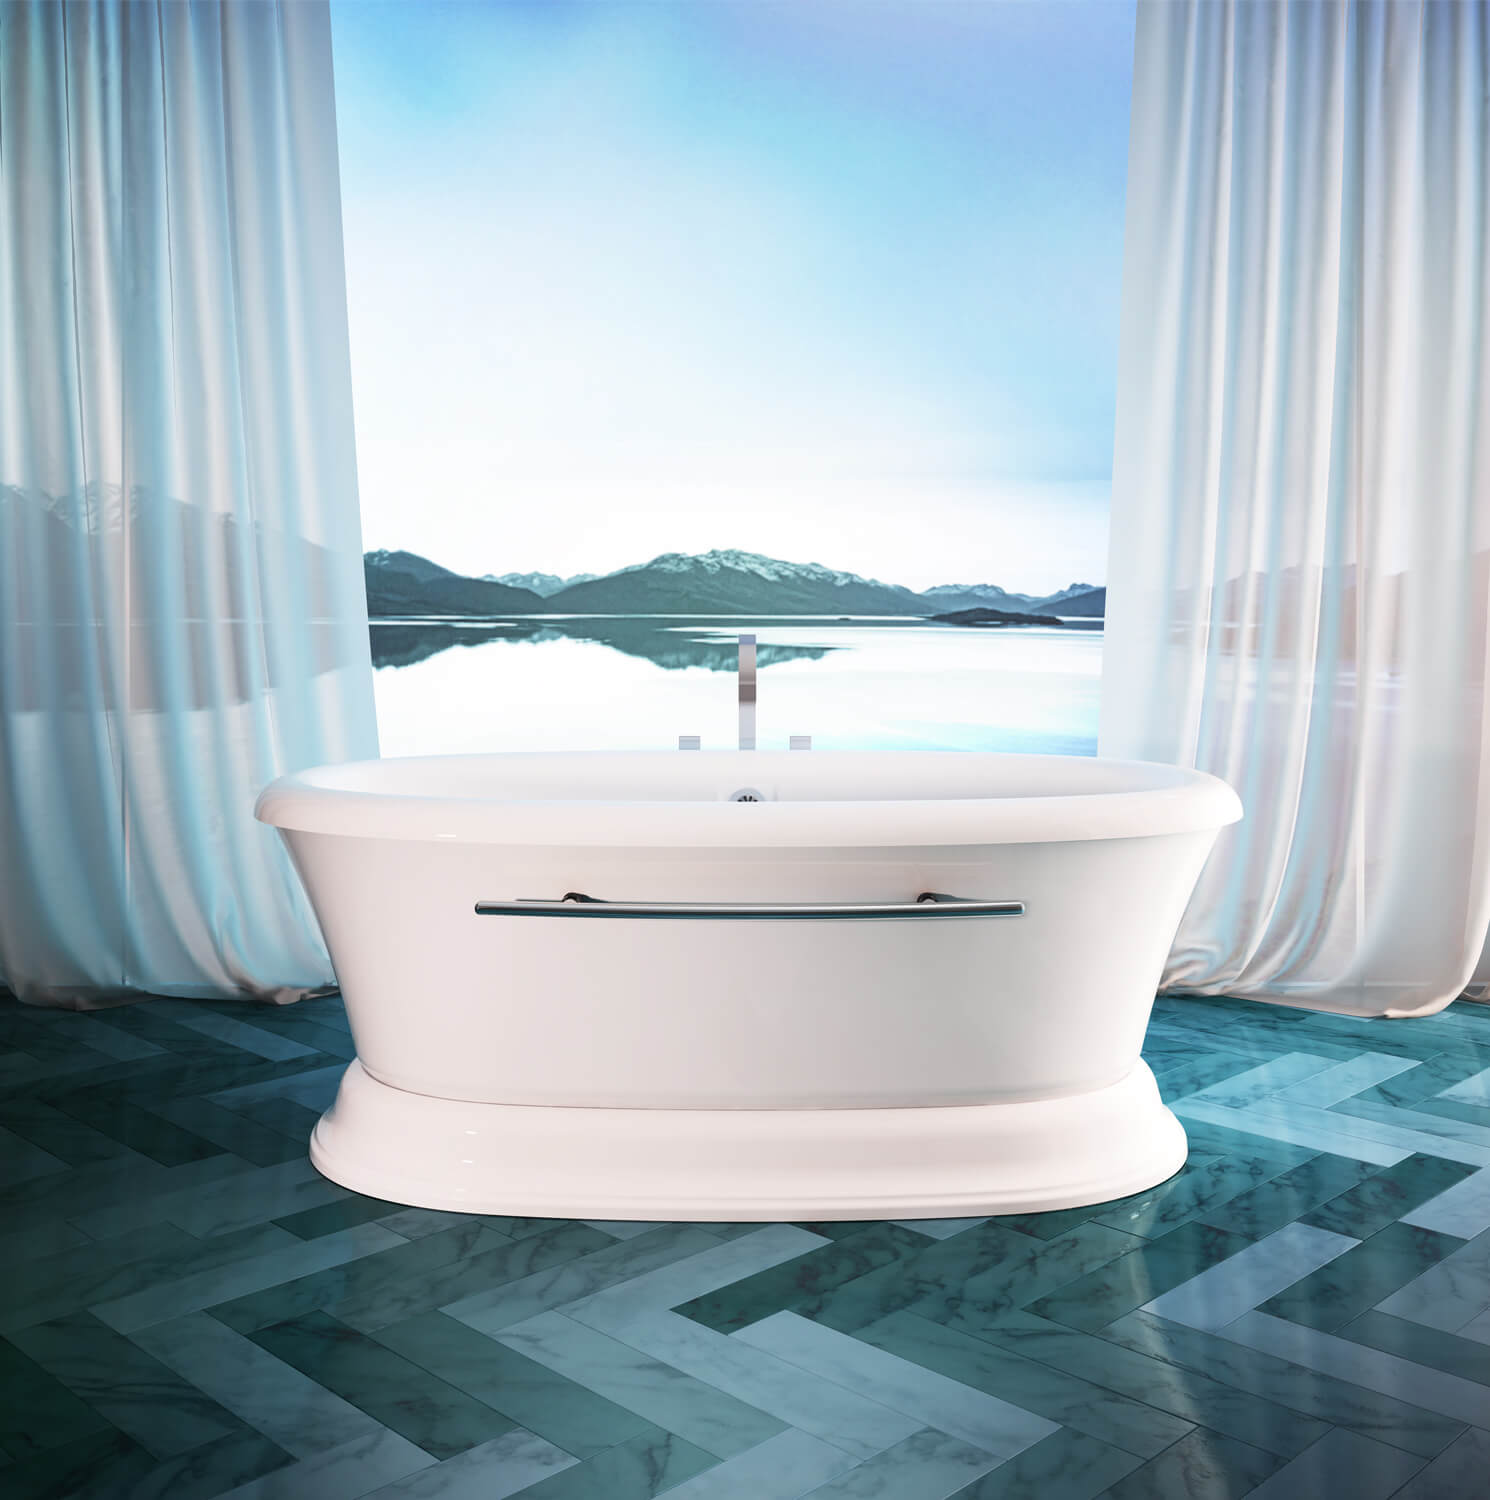 Bainultra Naos 7240 two person large pedestal air jet bathtub for your modern bathroom